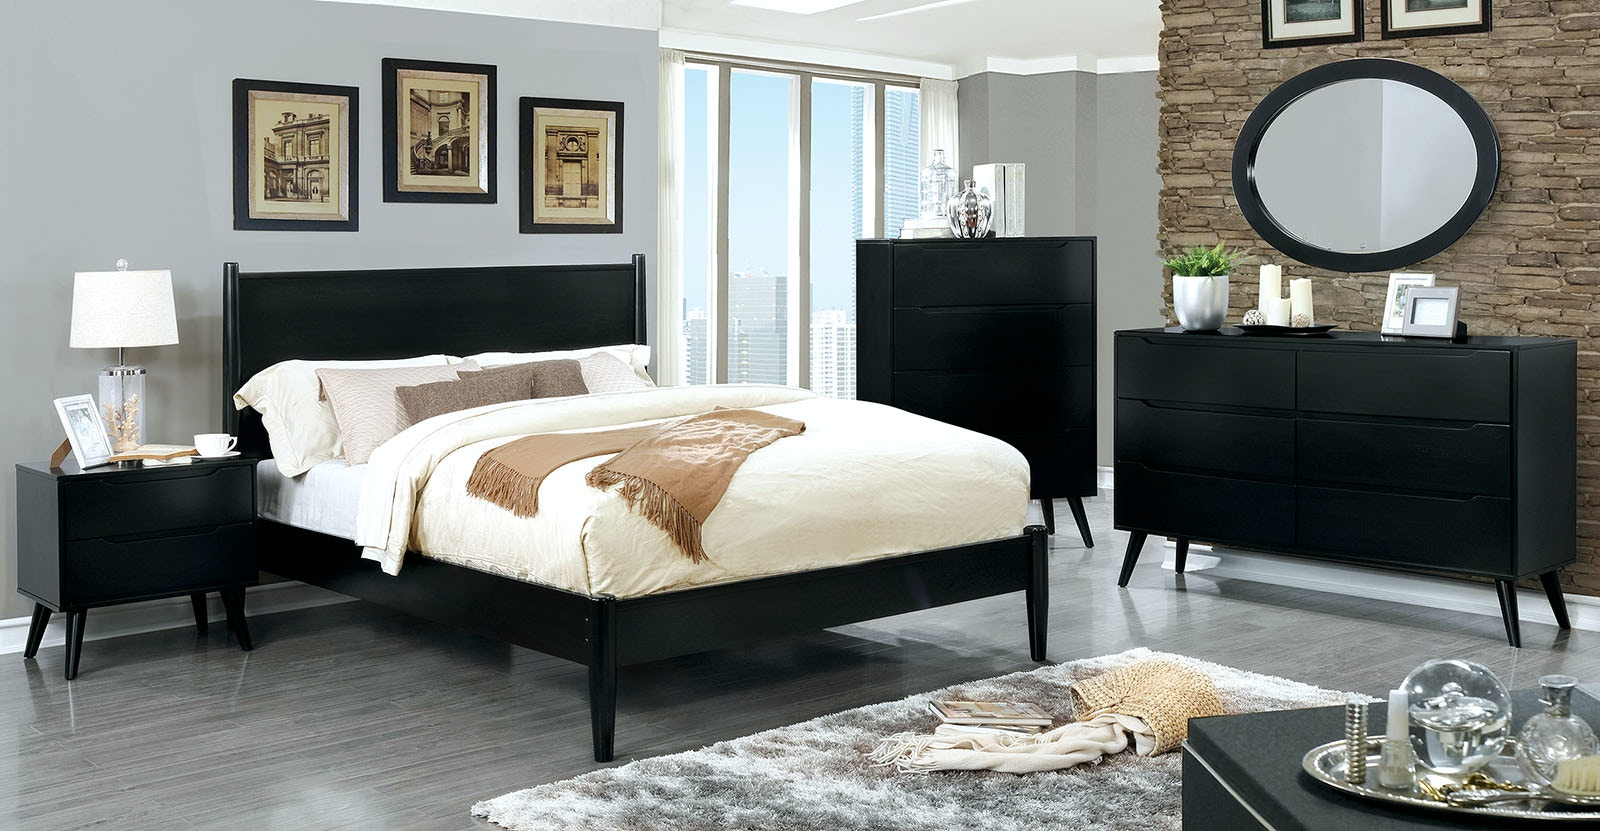 Superieur Furniture Of America Bedroom Armoire, Black CM7386BK AR SET At The  Furniture Mall